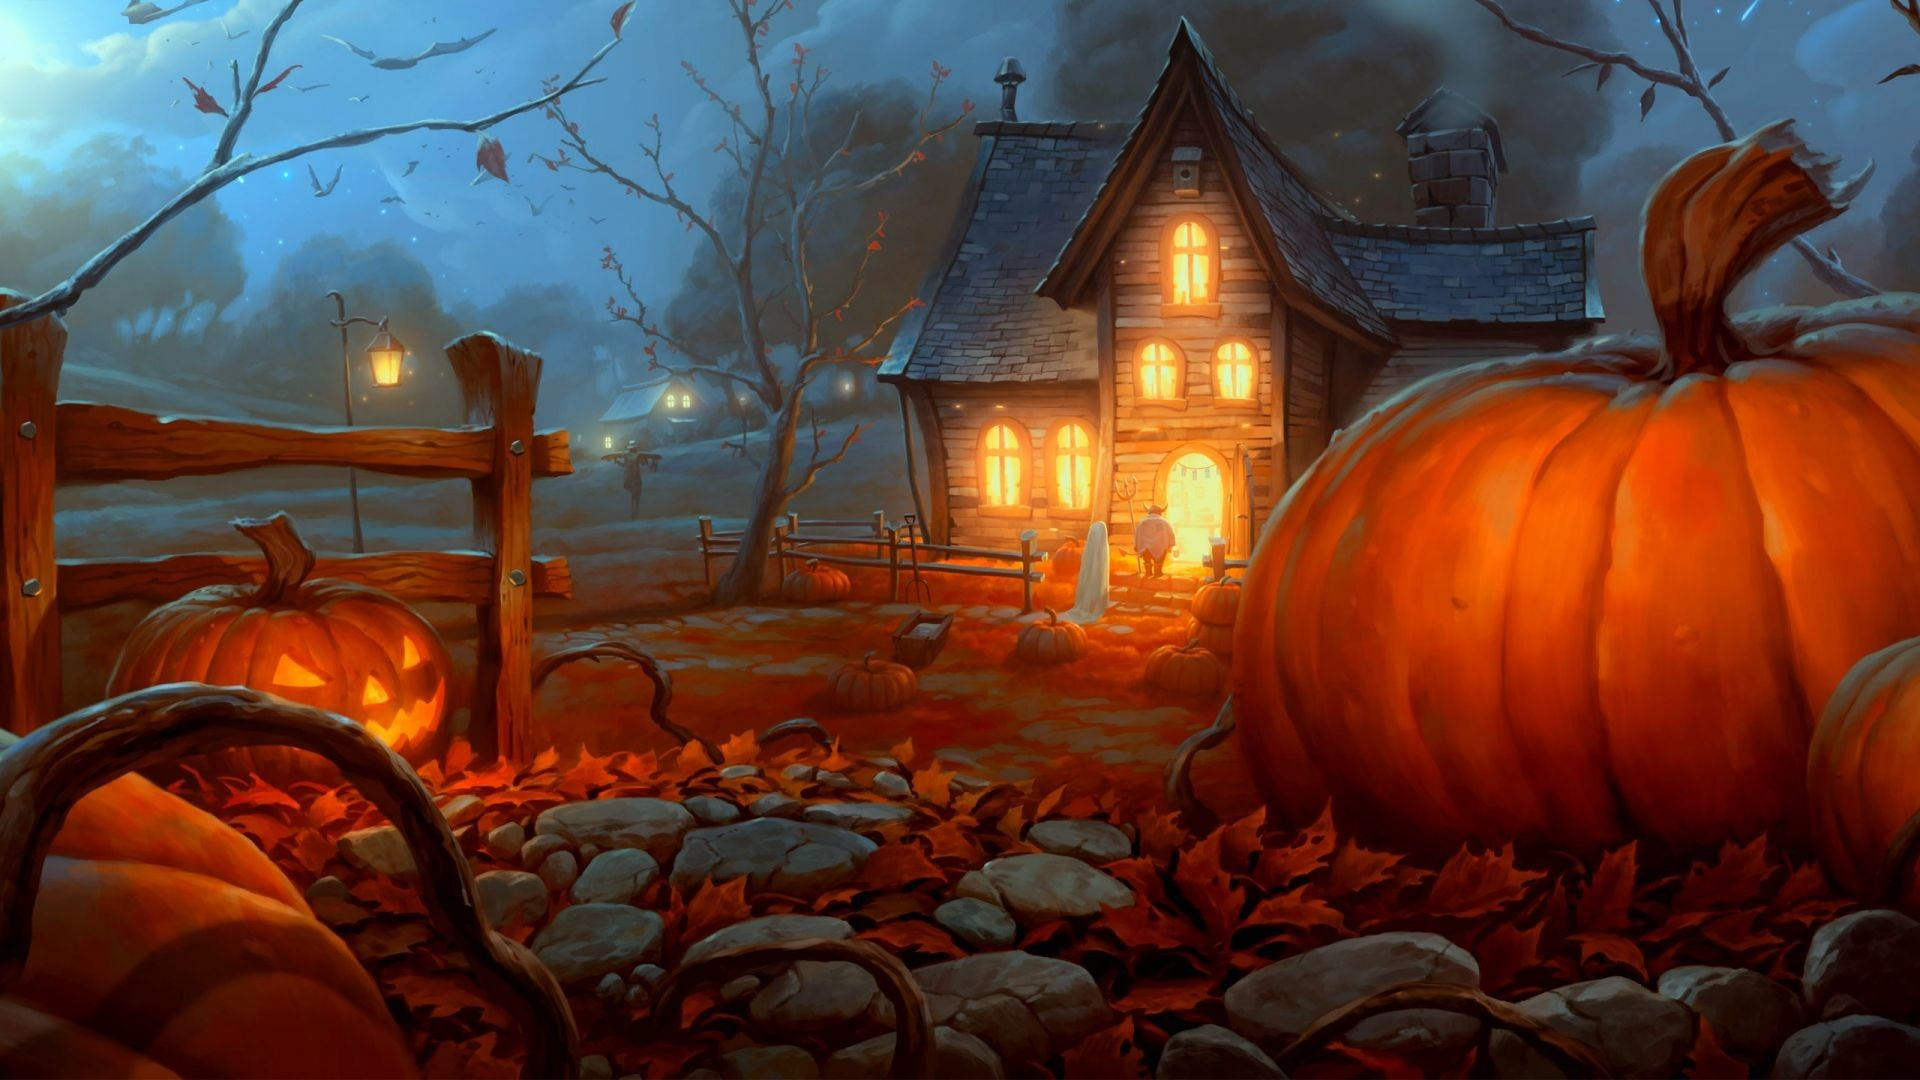 Lovely 1920x1200 Scary Halloween HD Wallpaper Addams Family Lurch